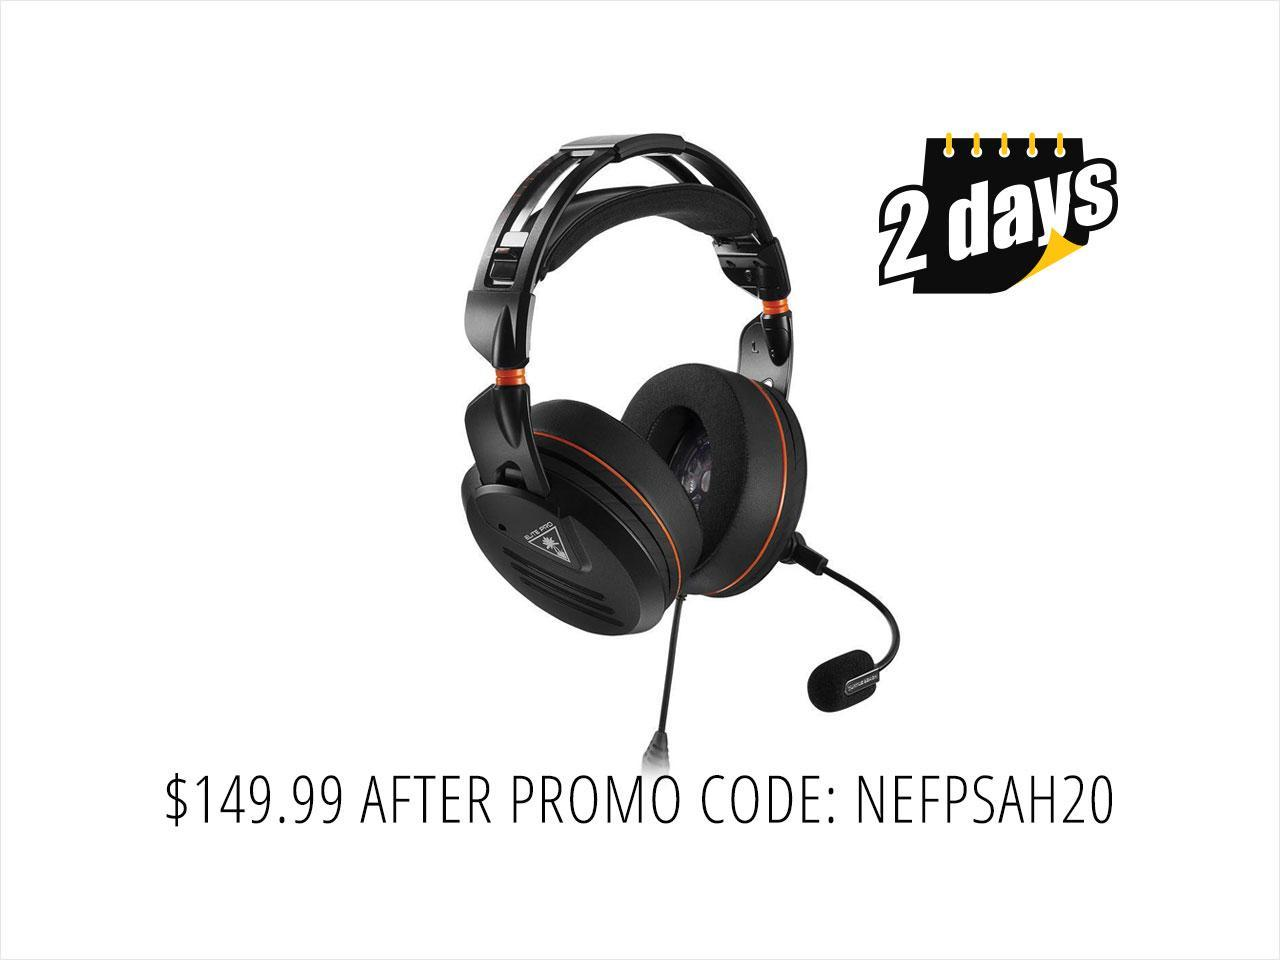 Turtle Beach Elite Pro Tournament Gaming Headset - Xbox One, PS4, PC and Mobile Gaming